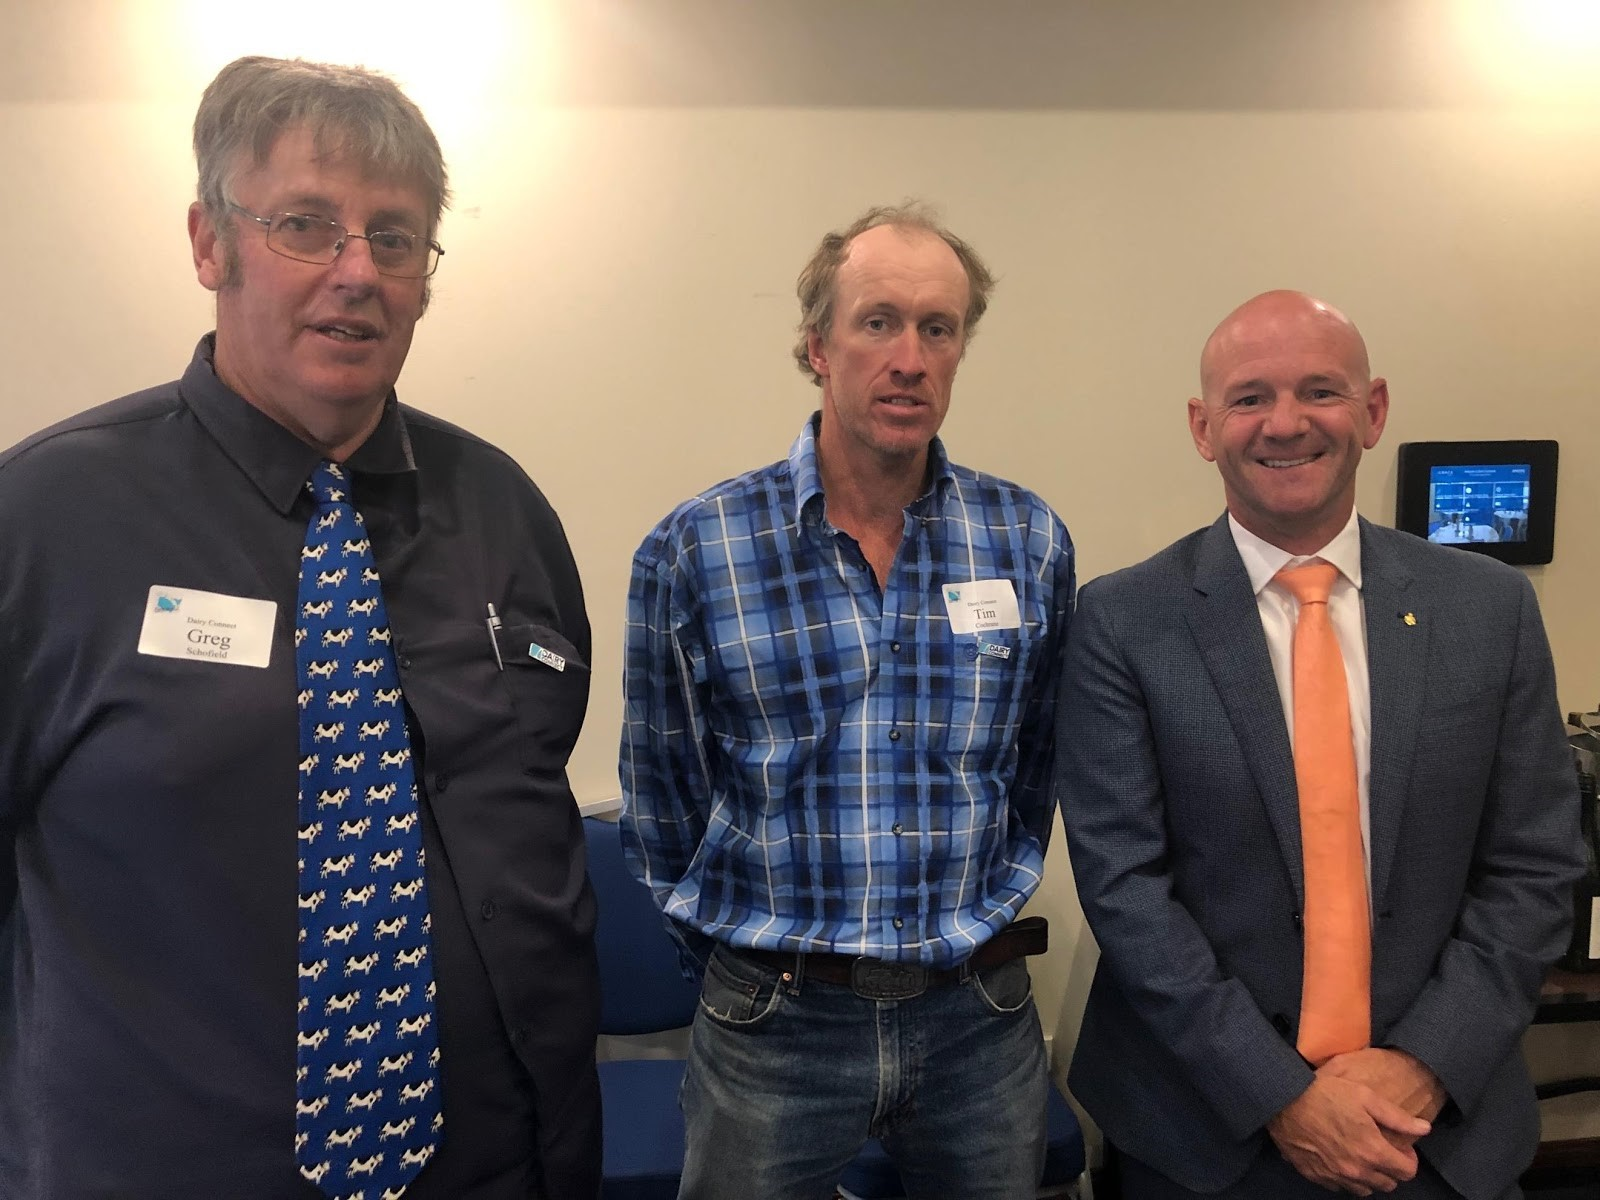 L-R: Greg Schofield, dairy farmer, Southern Highlands; Tim Cochrane, DC Farmers Group Member & dairy farmer, South Coast; the Hon Niall Blair MLC